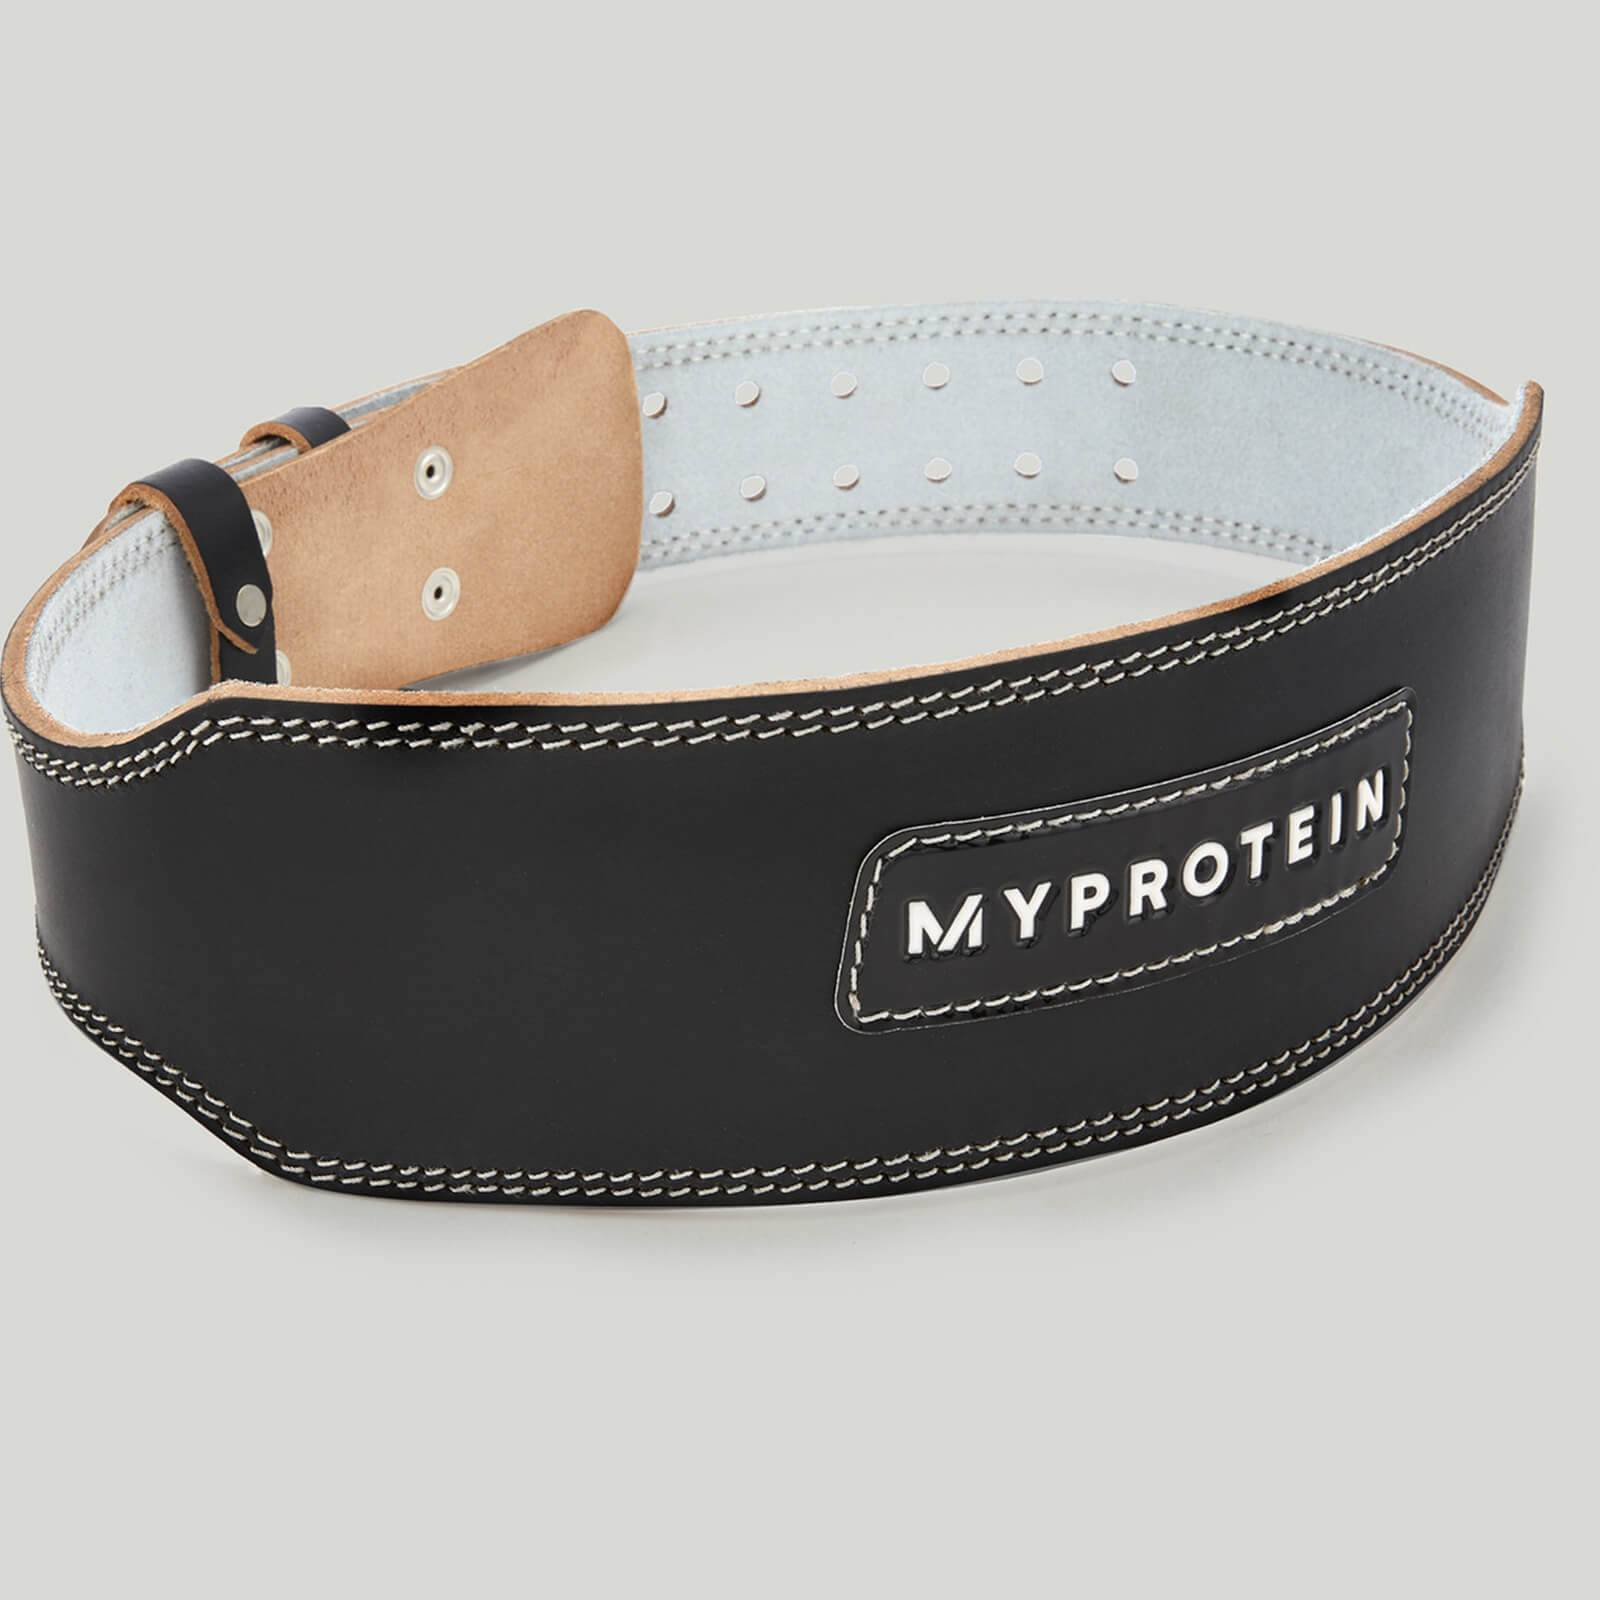 Myprotein Leather Lifting Belt - Large (32-40 Inch)